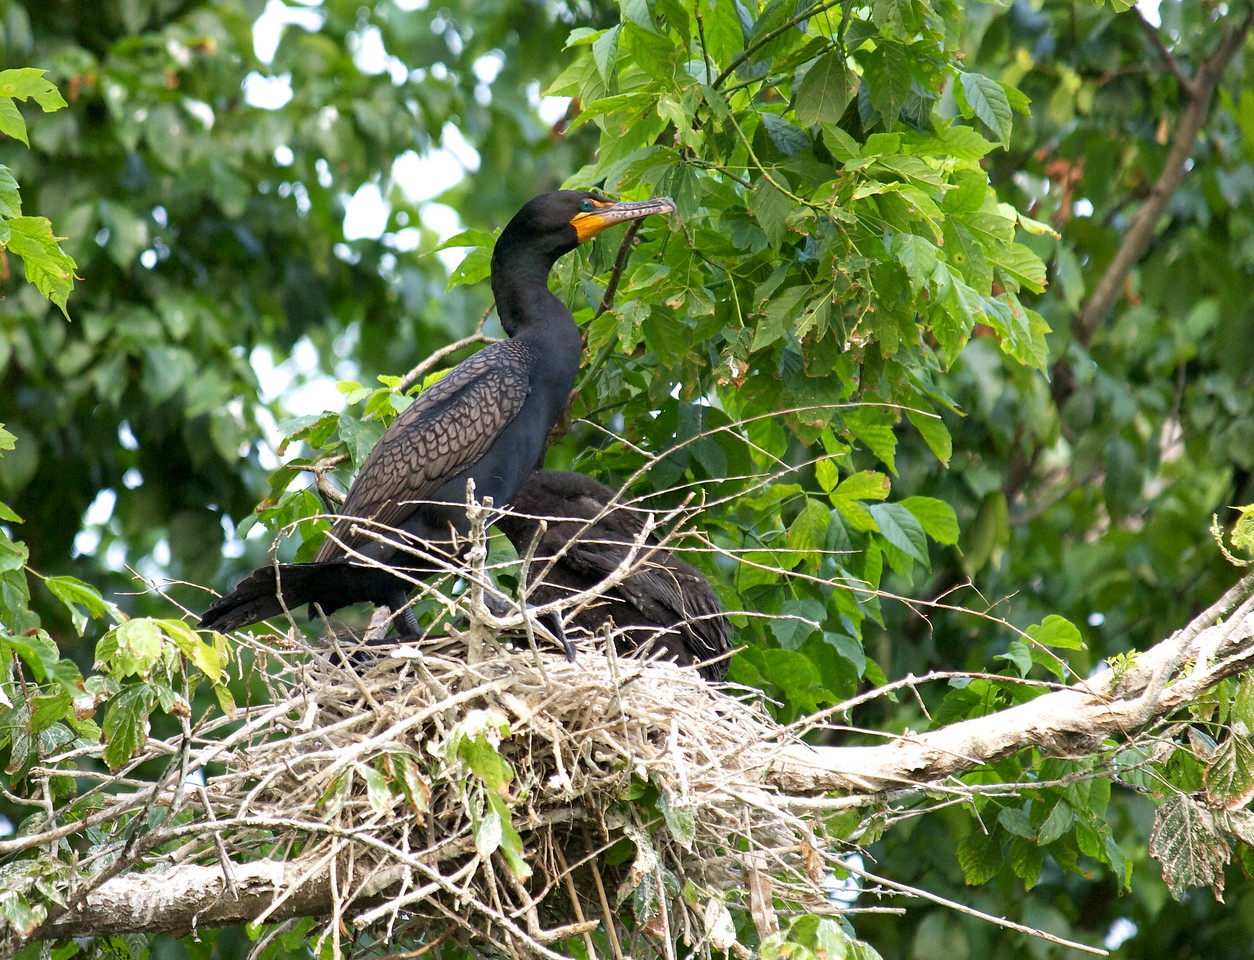 Double crested cormorant on nest with a chick